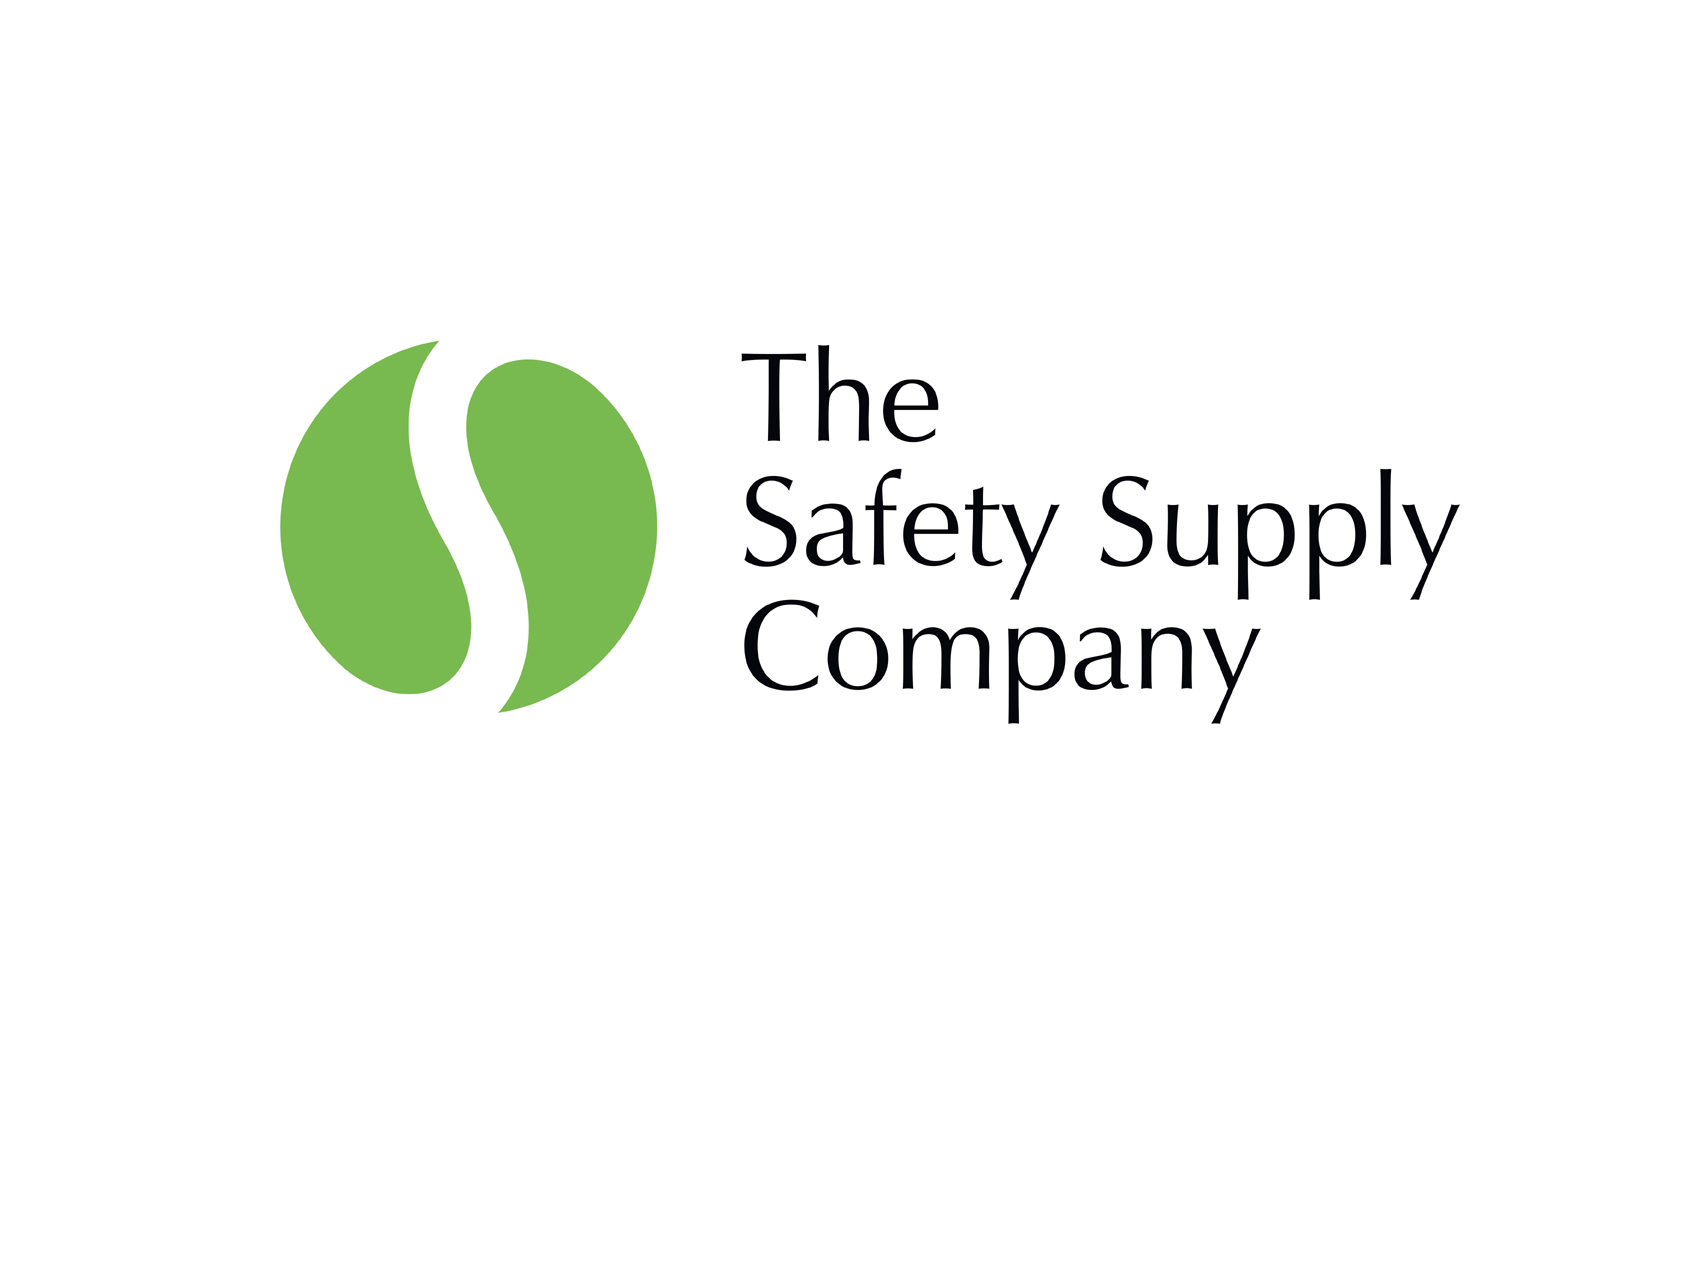 The Safety Supply Company logo